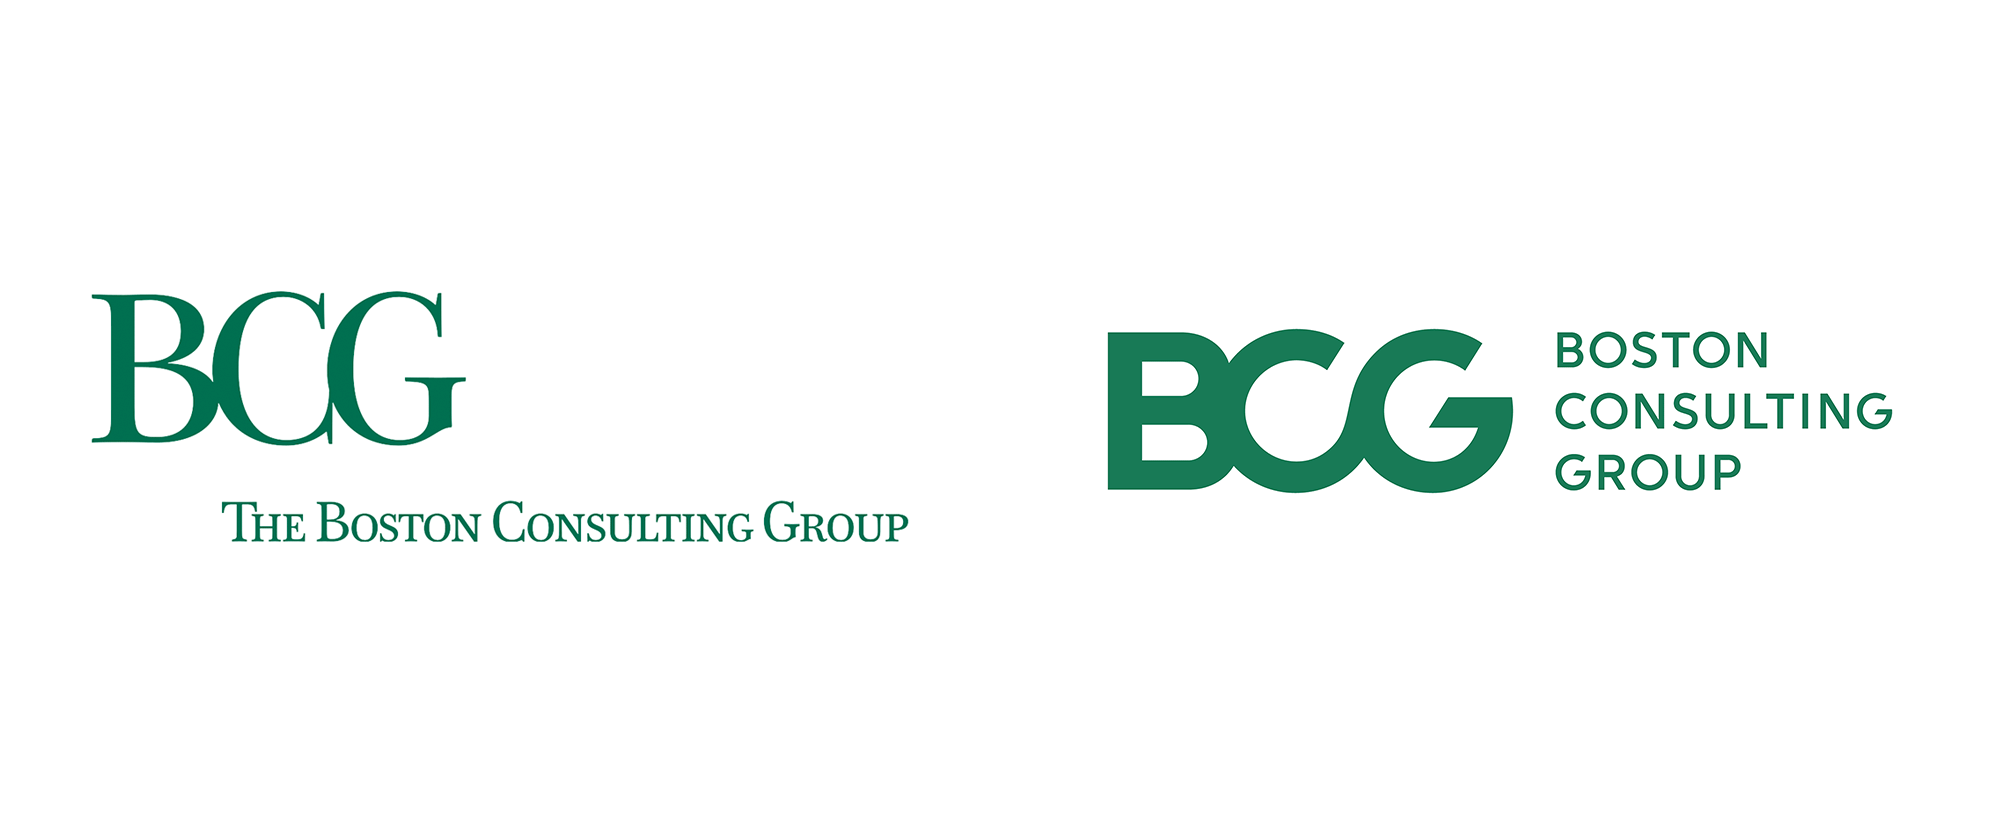 New Logo and Identity for Boston Consulting Group by Carbone Smolan Agency